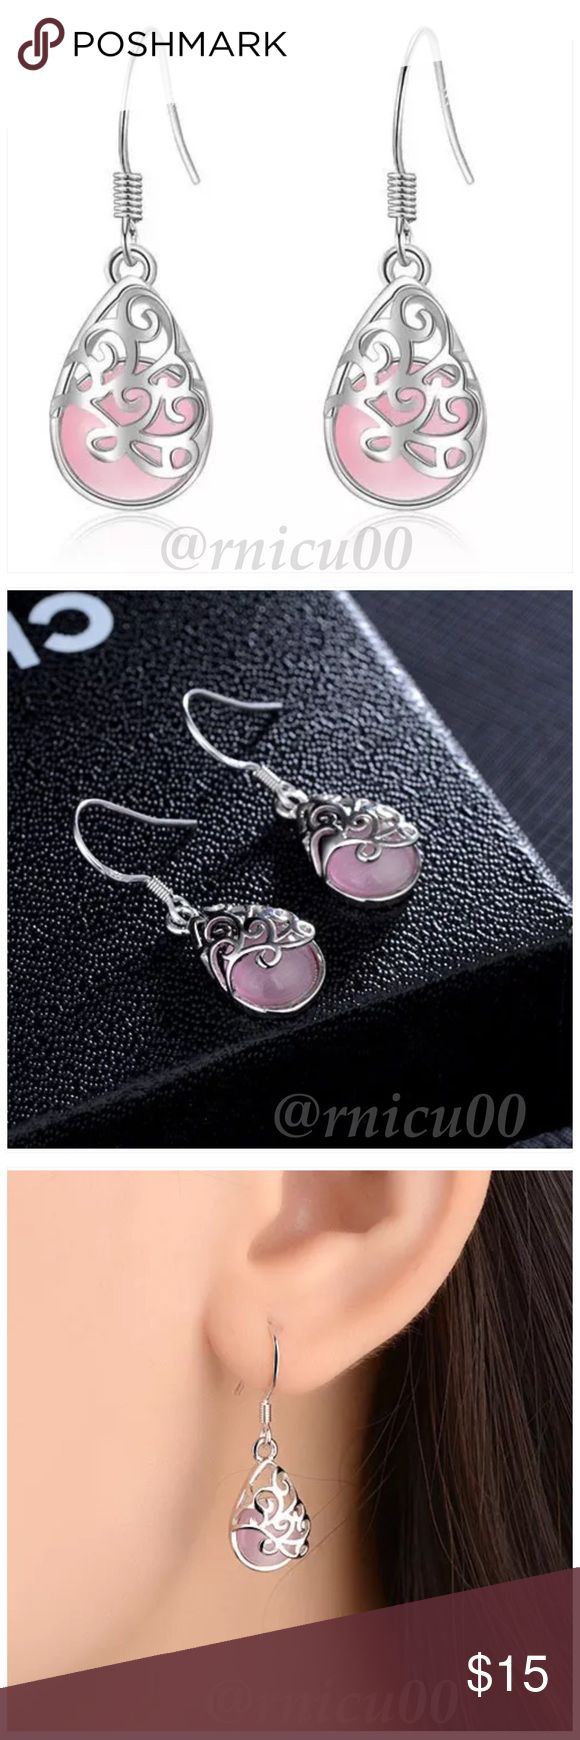 🆕Pink Opal 925 Sterling Silver Drop Earrings! Simple yet Classy Pink Opal Stone & Sterling Silver Drop Earrings. Wear with Everything; Beautiful Details; Not heavy  🌺I am Very Excited to Introduce to You my New Minimalist Line! All are Superior Quality, every piece is 925 Sterling, Meant to Mix & Match to Build your Own Style!🌺 *925 Sterling Silver & Stamped; Wire Hook back for pierced ears *Pink Opal Stone  *NO TRADES *Prices are FIRM-Listed at Lowest Price Unless BUNDLED! *Sales are…